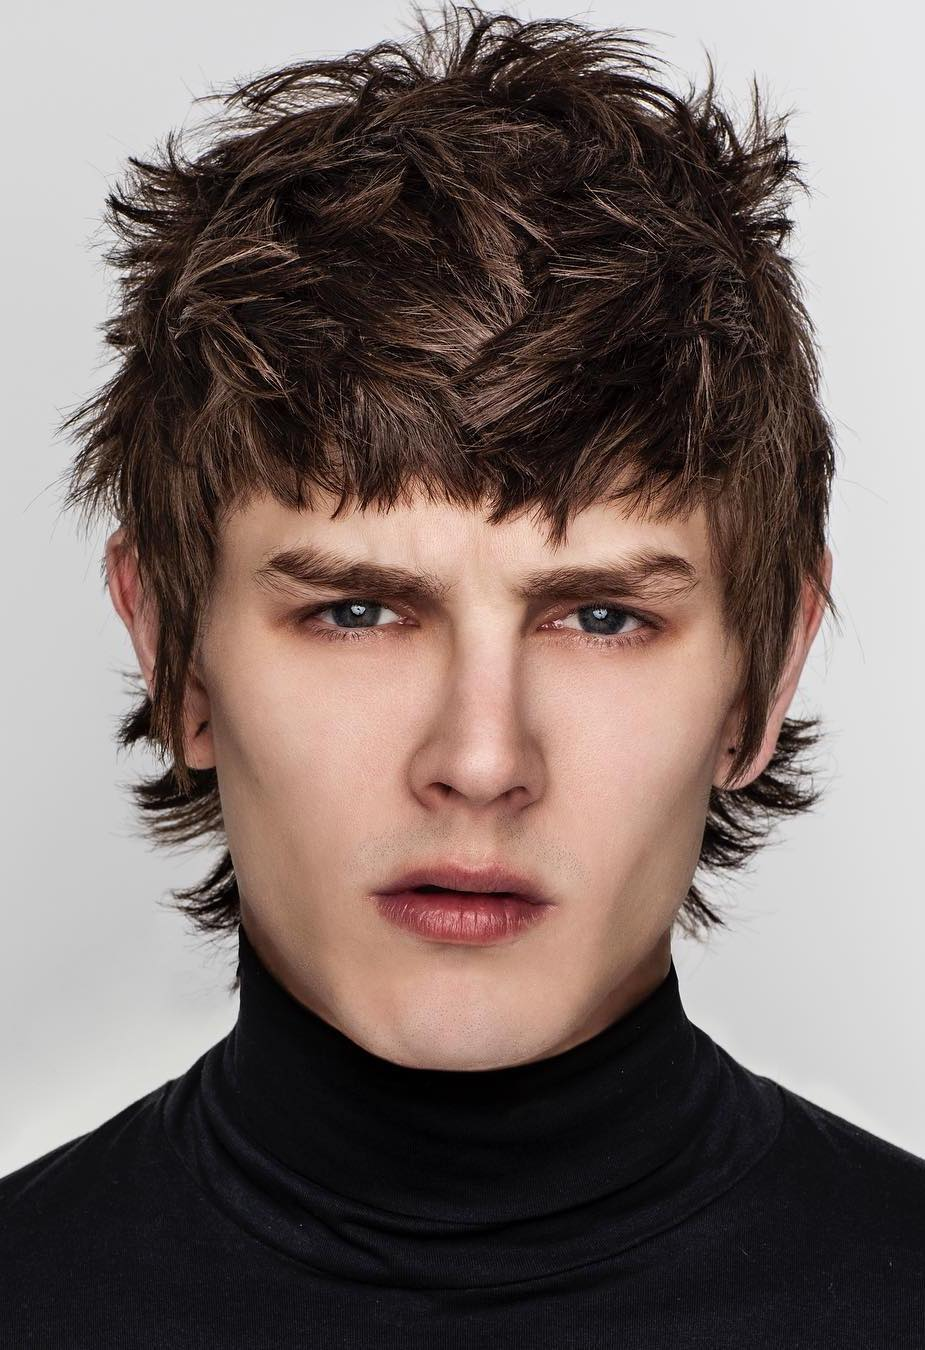 Fringe Haircut Styles For Men